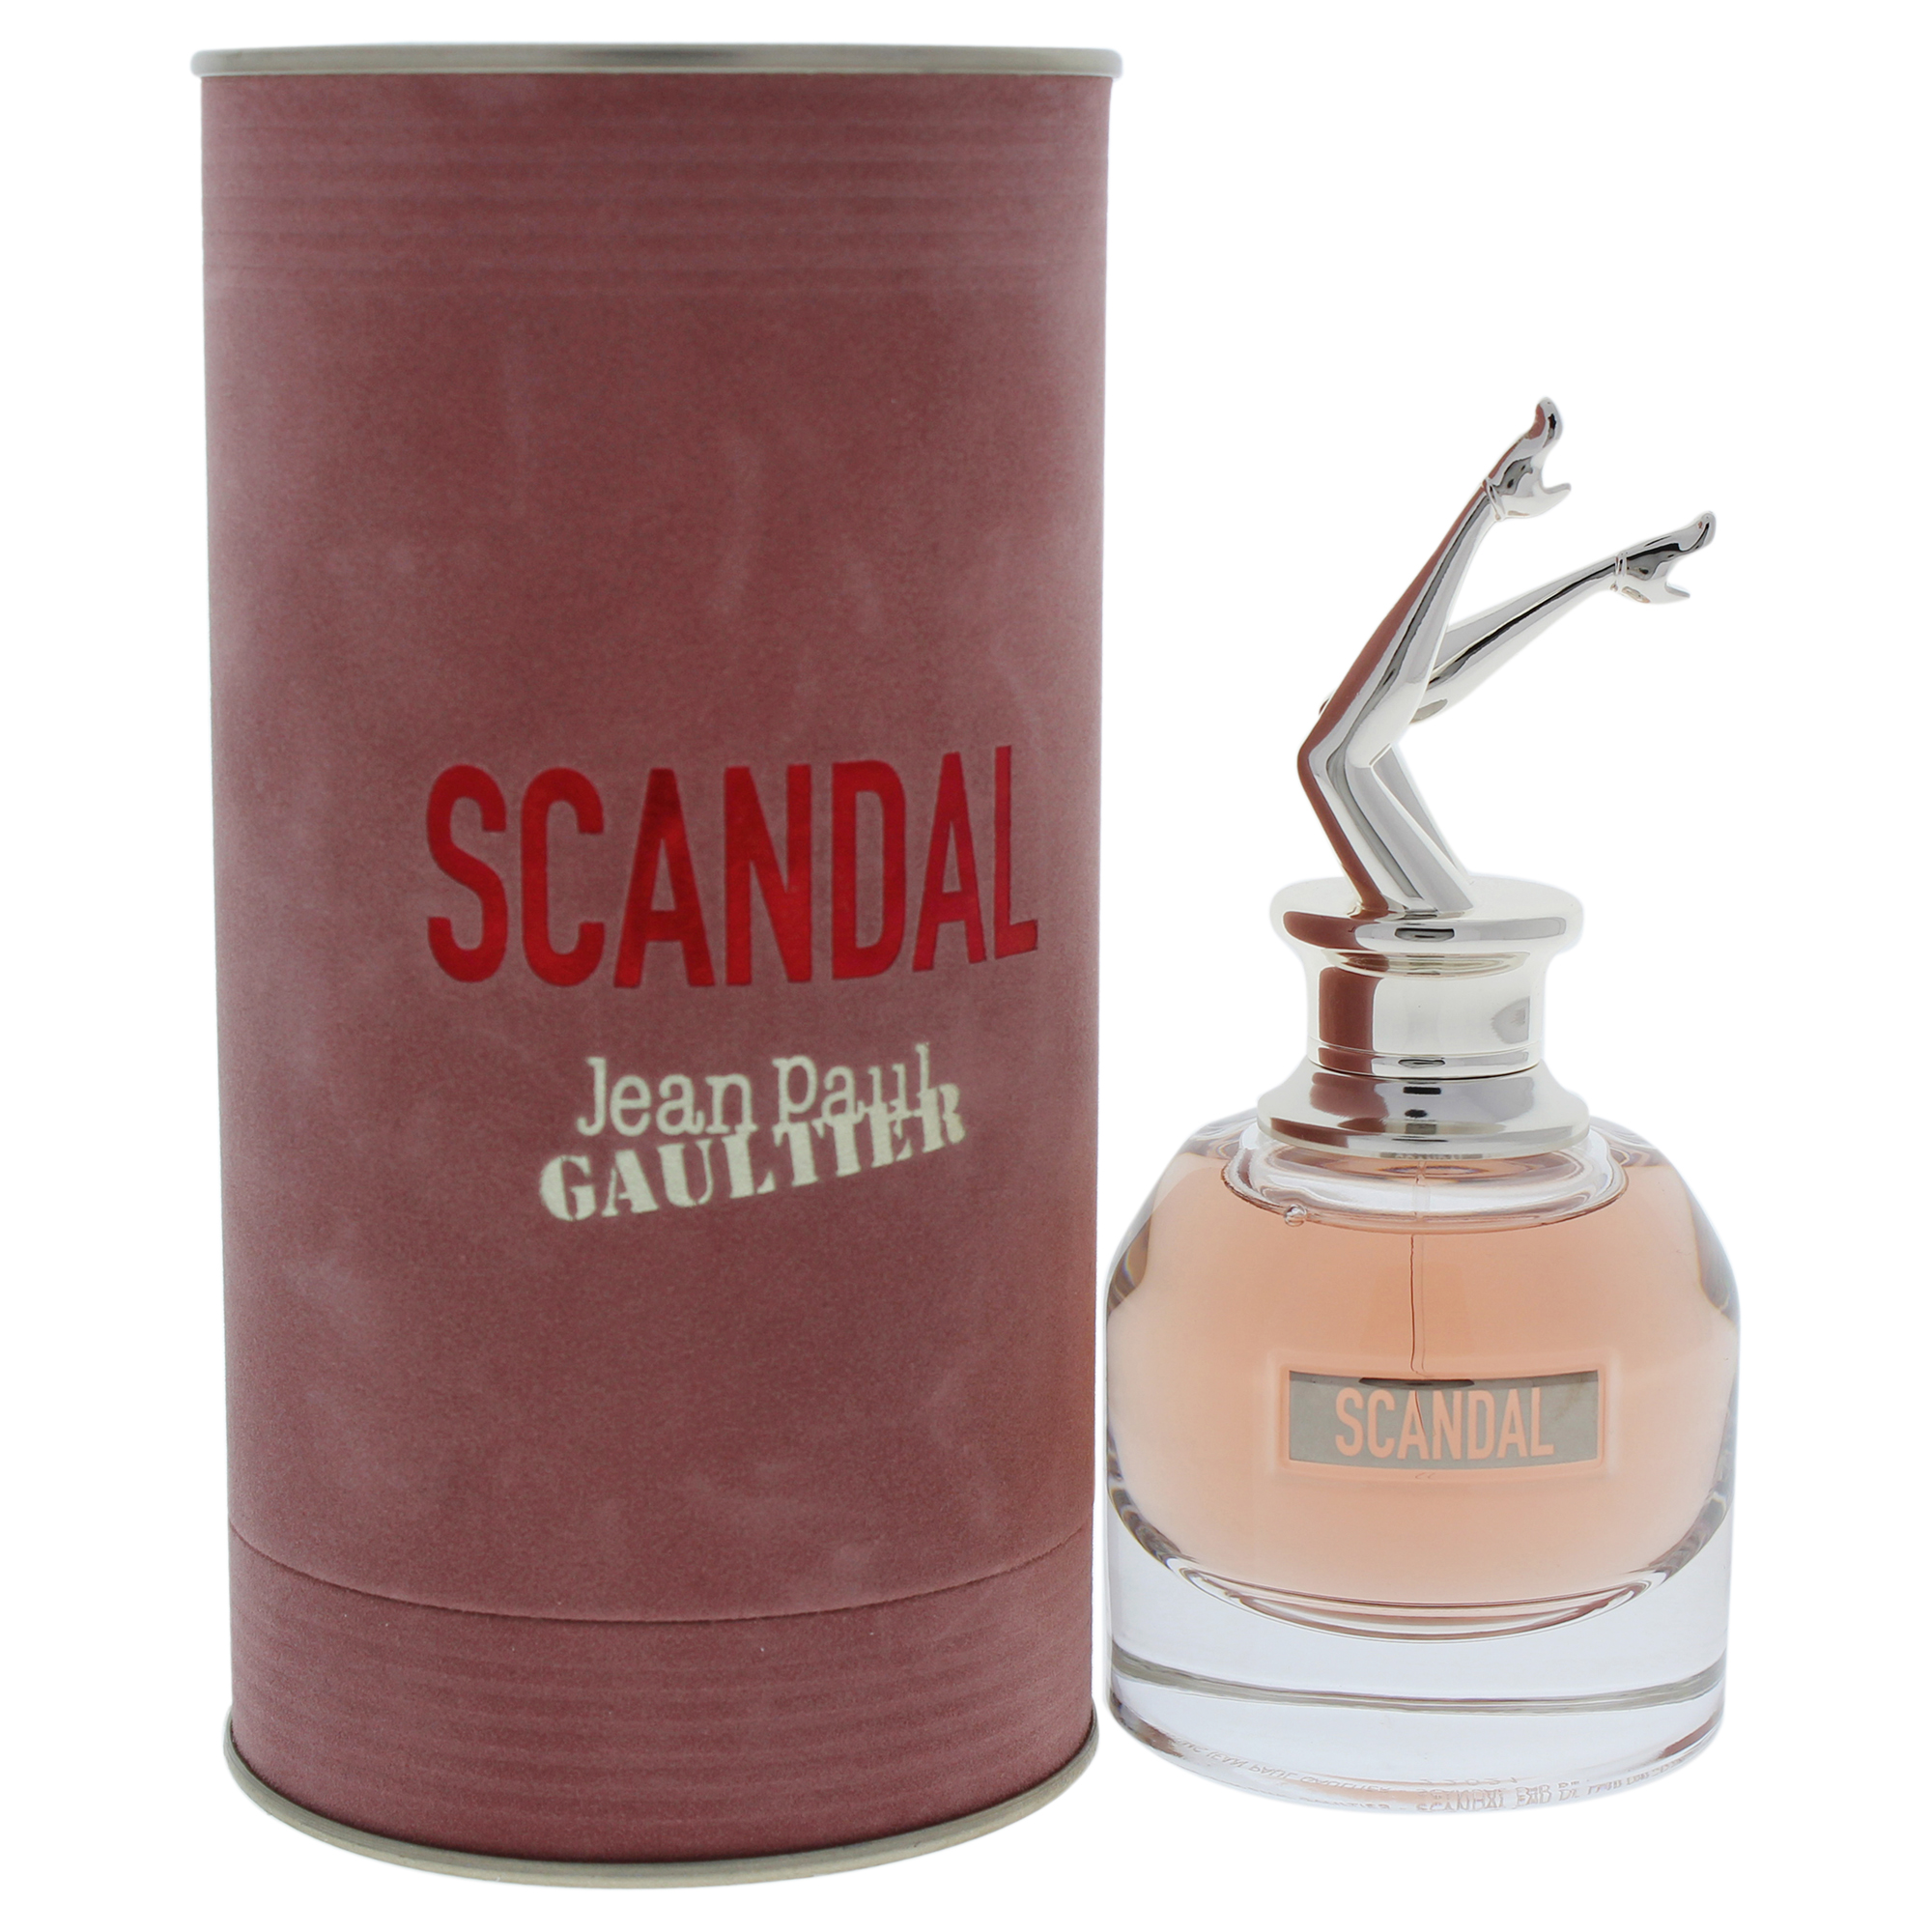 Scandal by Jean Paul Gaultier for Women - 1.7 oz EDP Spray